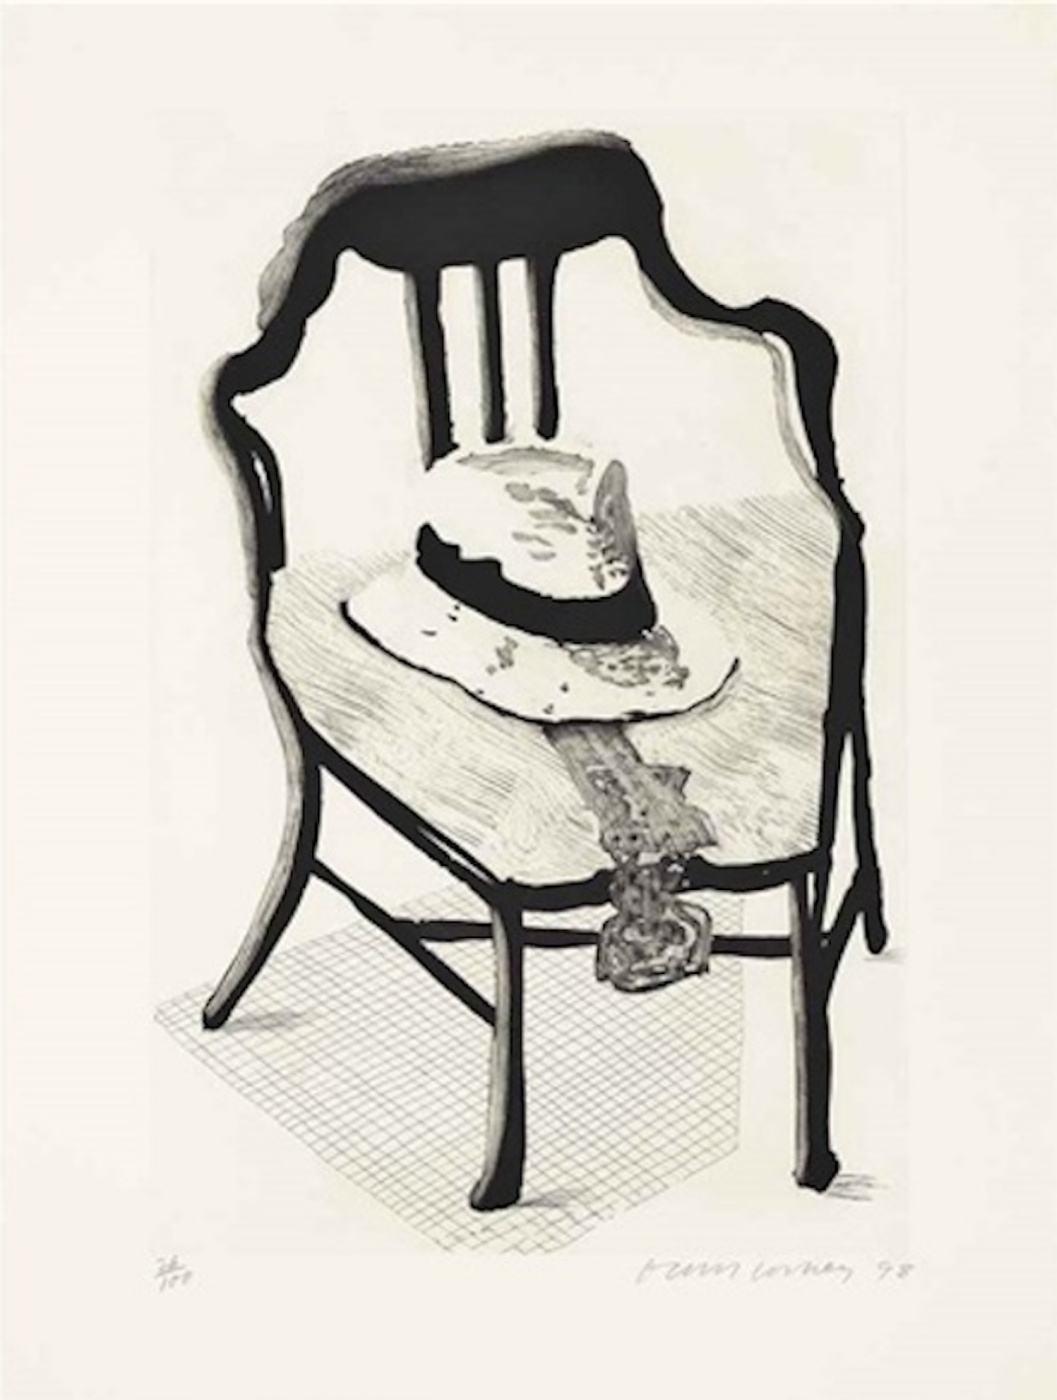 David Hockney. Hat with a bow tie on a chair